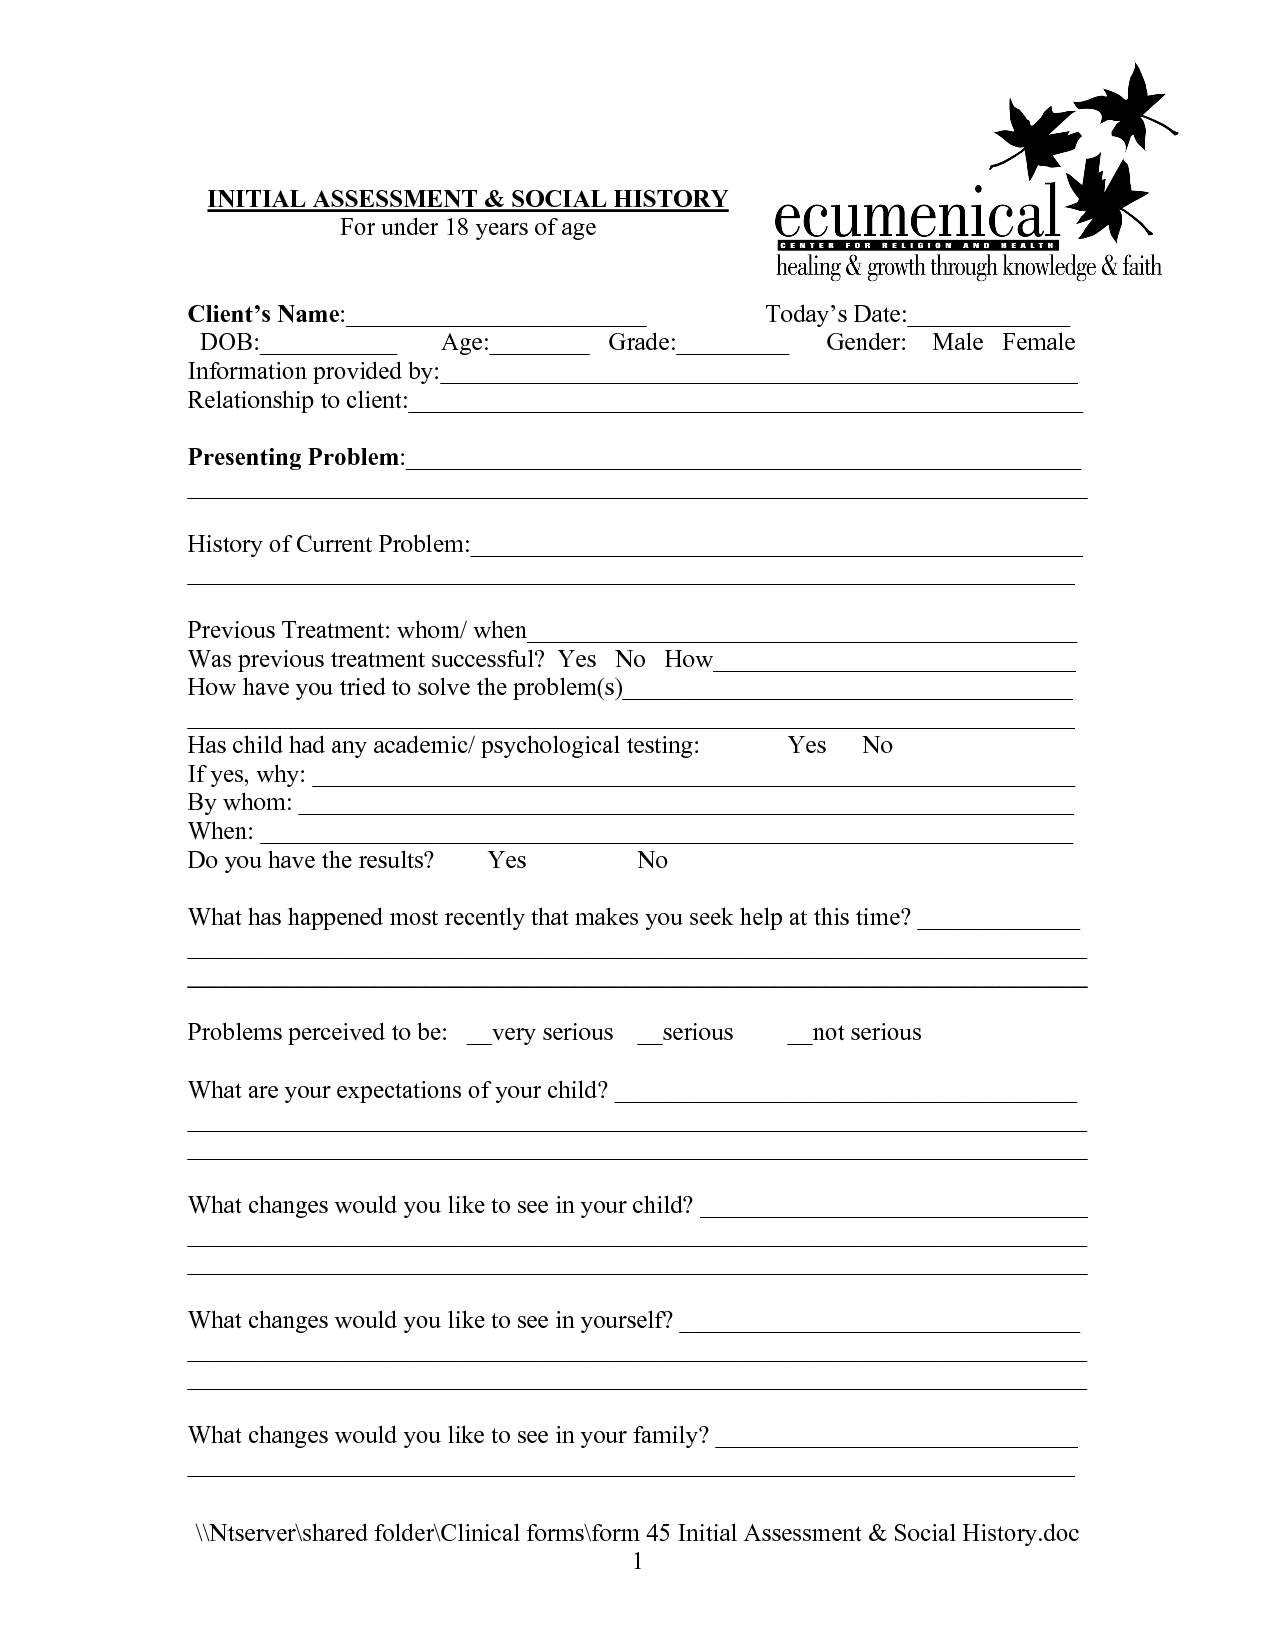 Social Work Intake Form Template Google Search